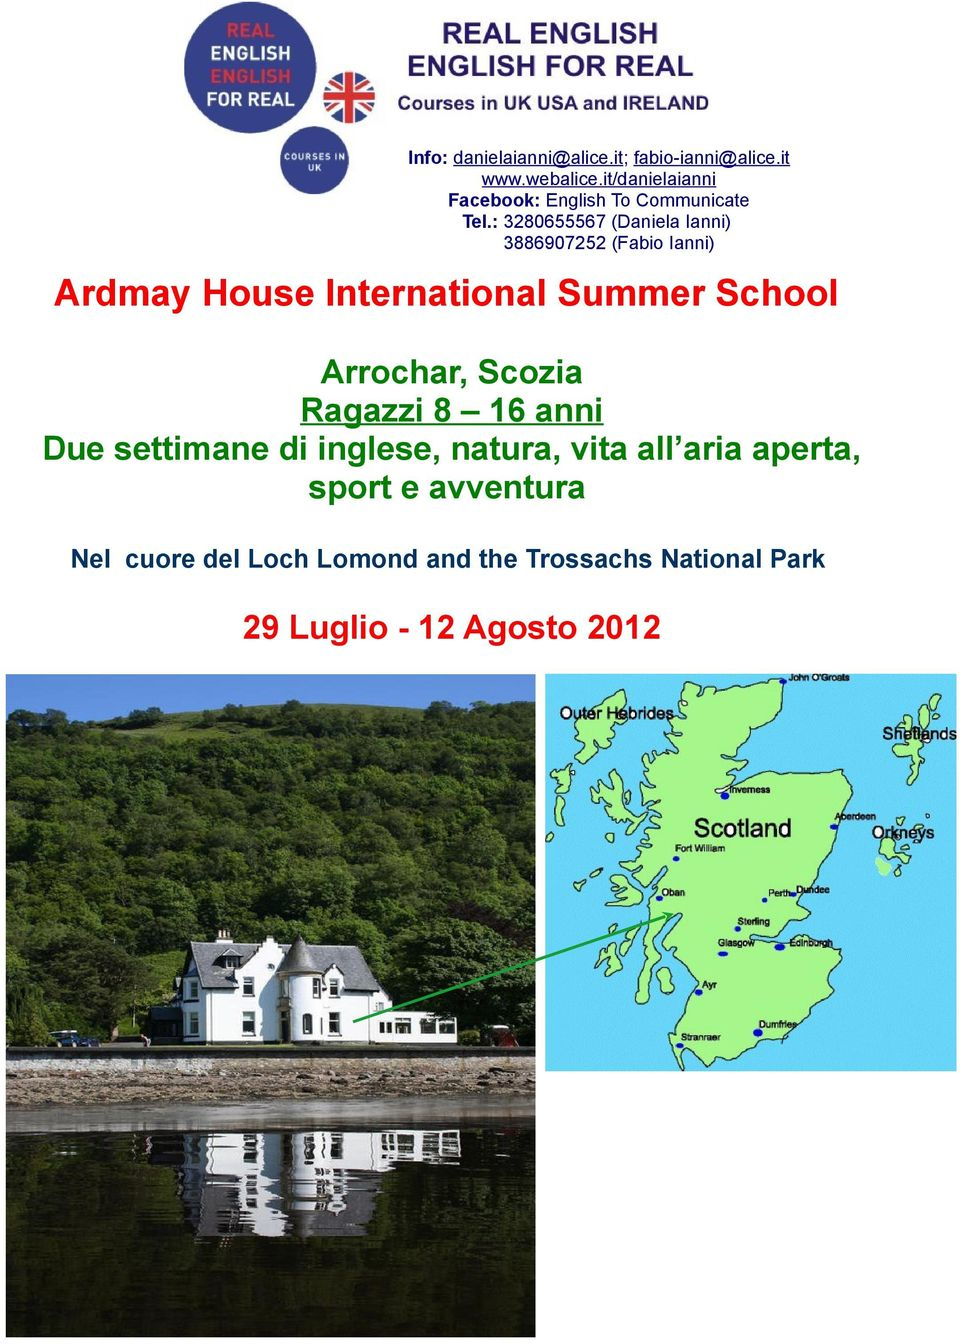 : 3280655567 (Daniela Ianni) 3886907252 (Fabio Ianni) Ardmay House International Summer School